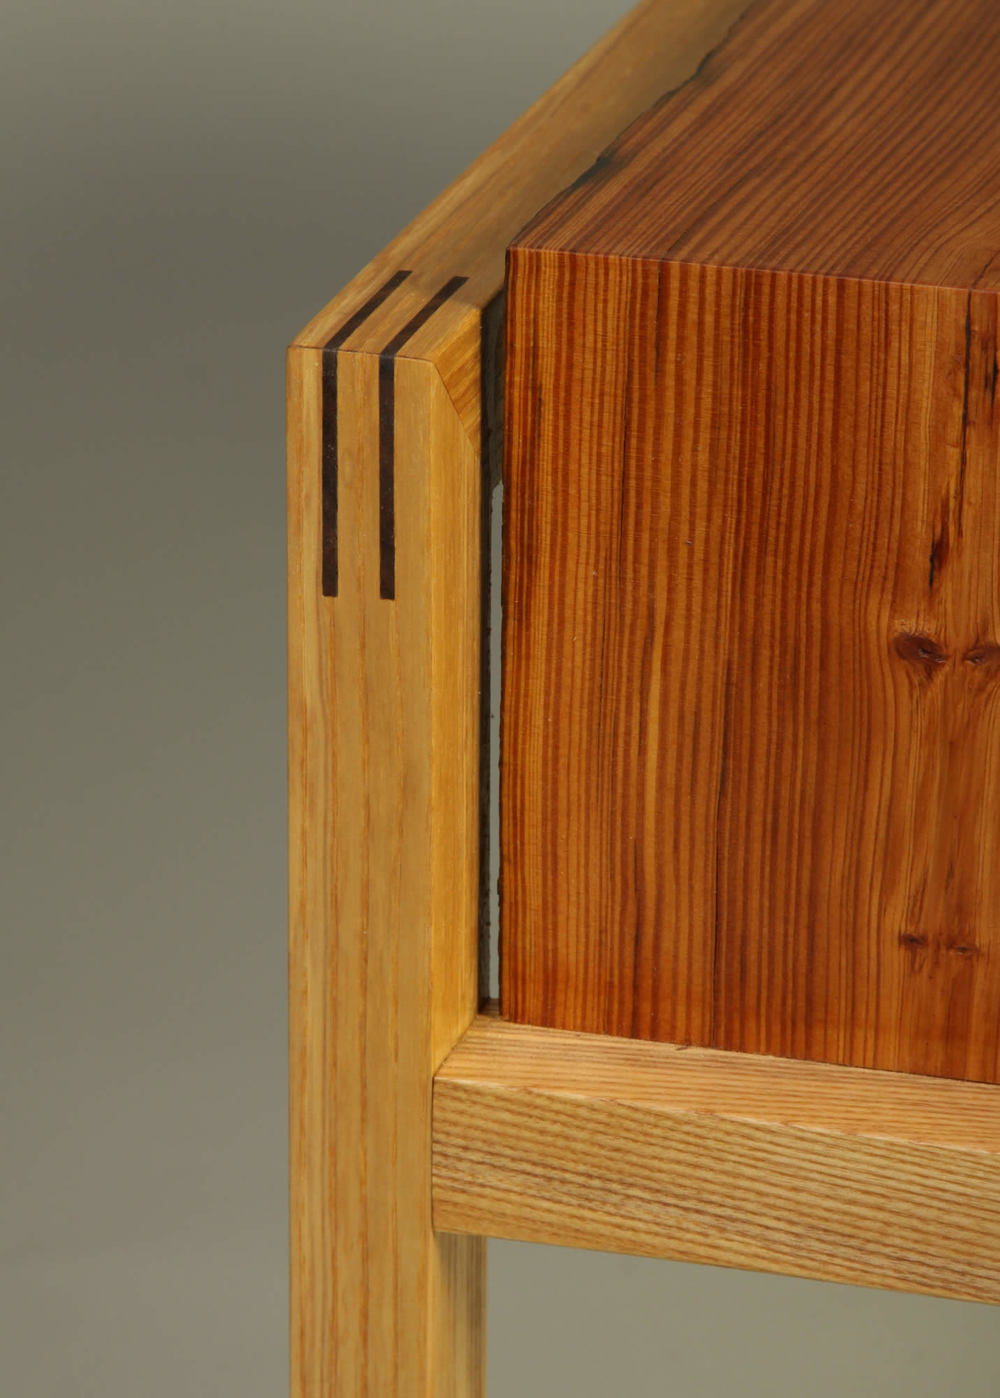 Above: Example of Mortise and Tenon Joinery